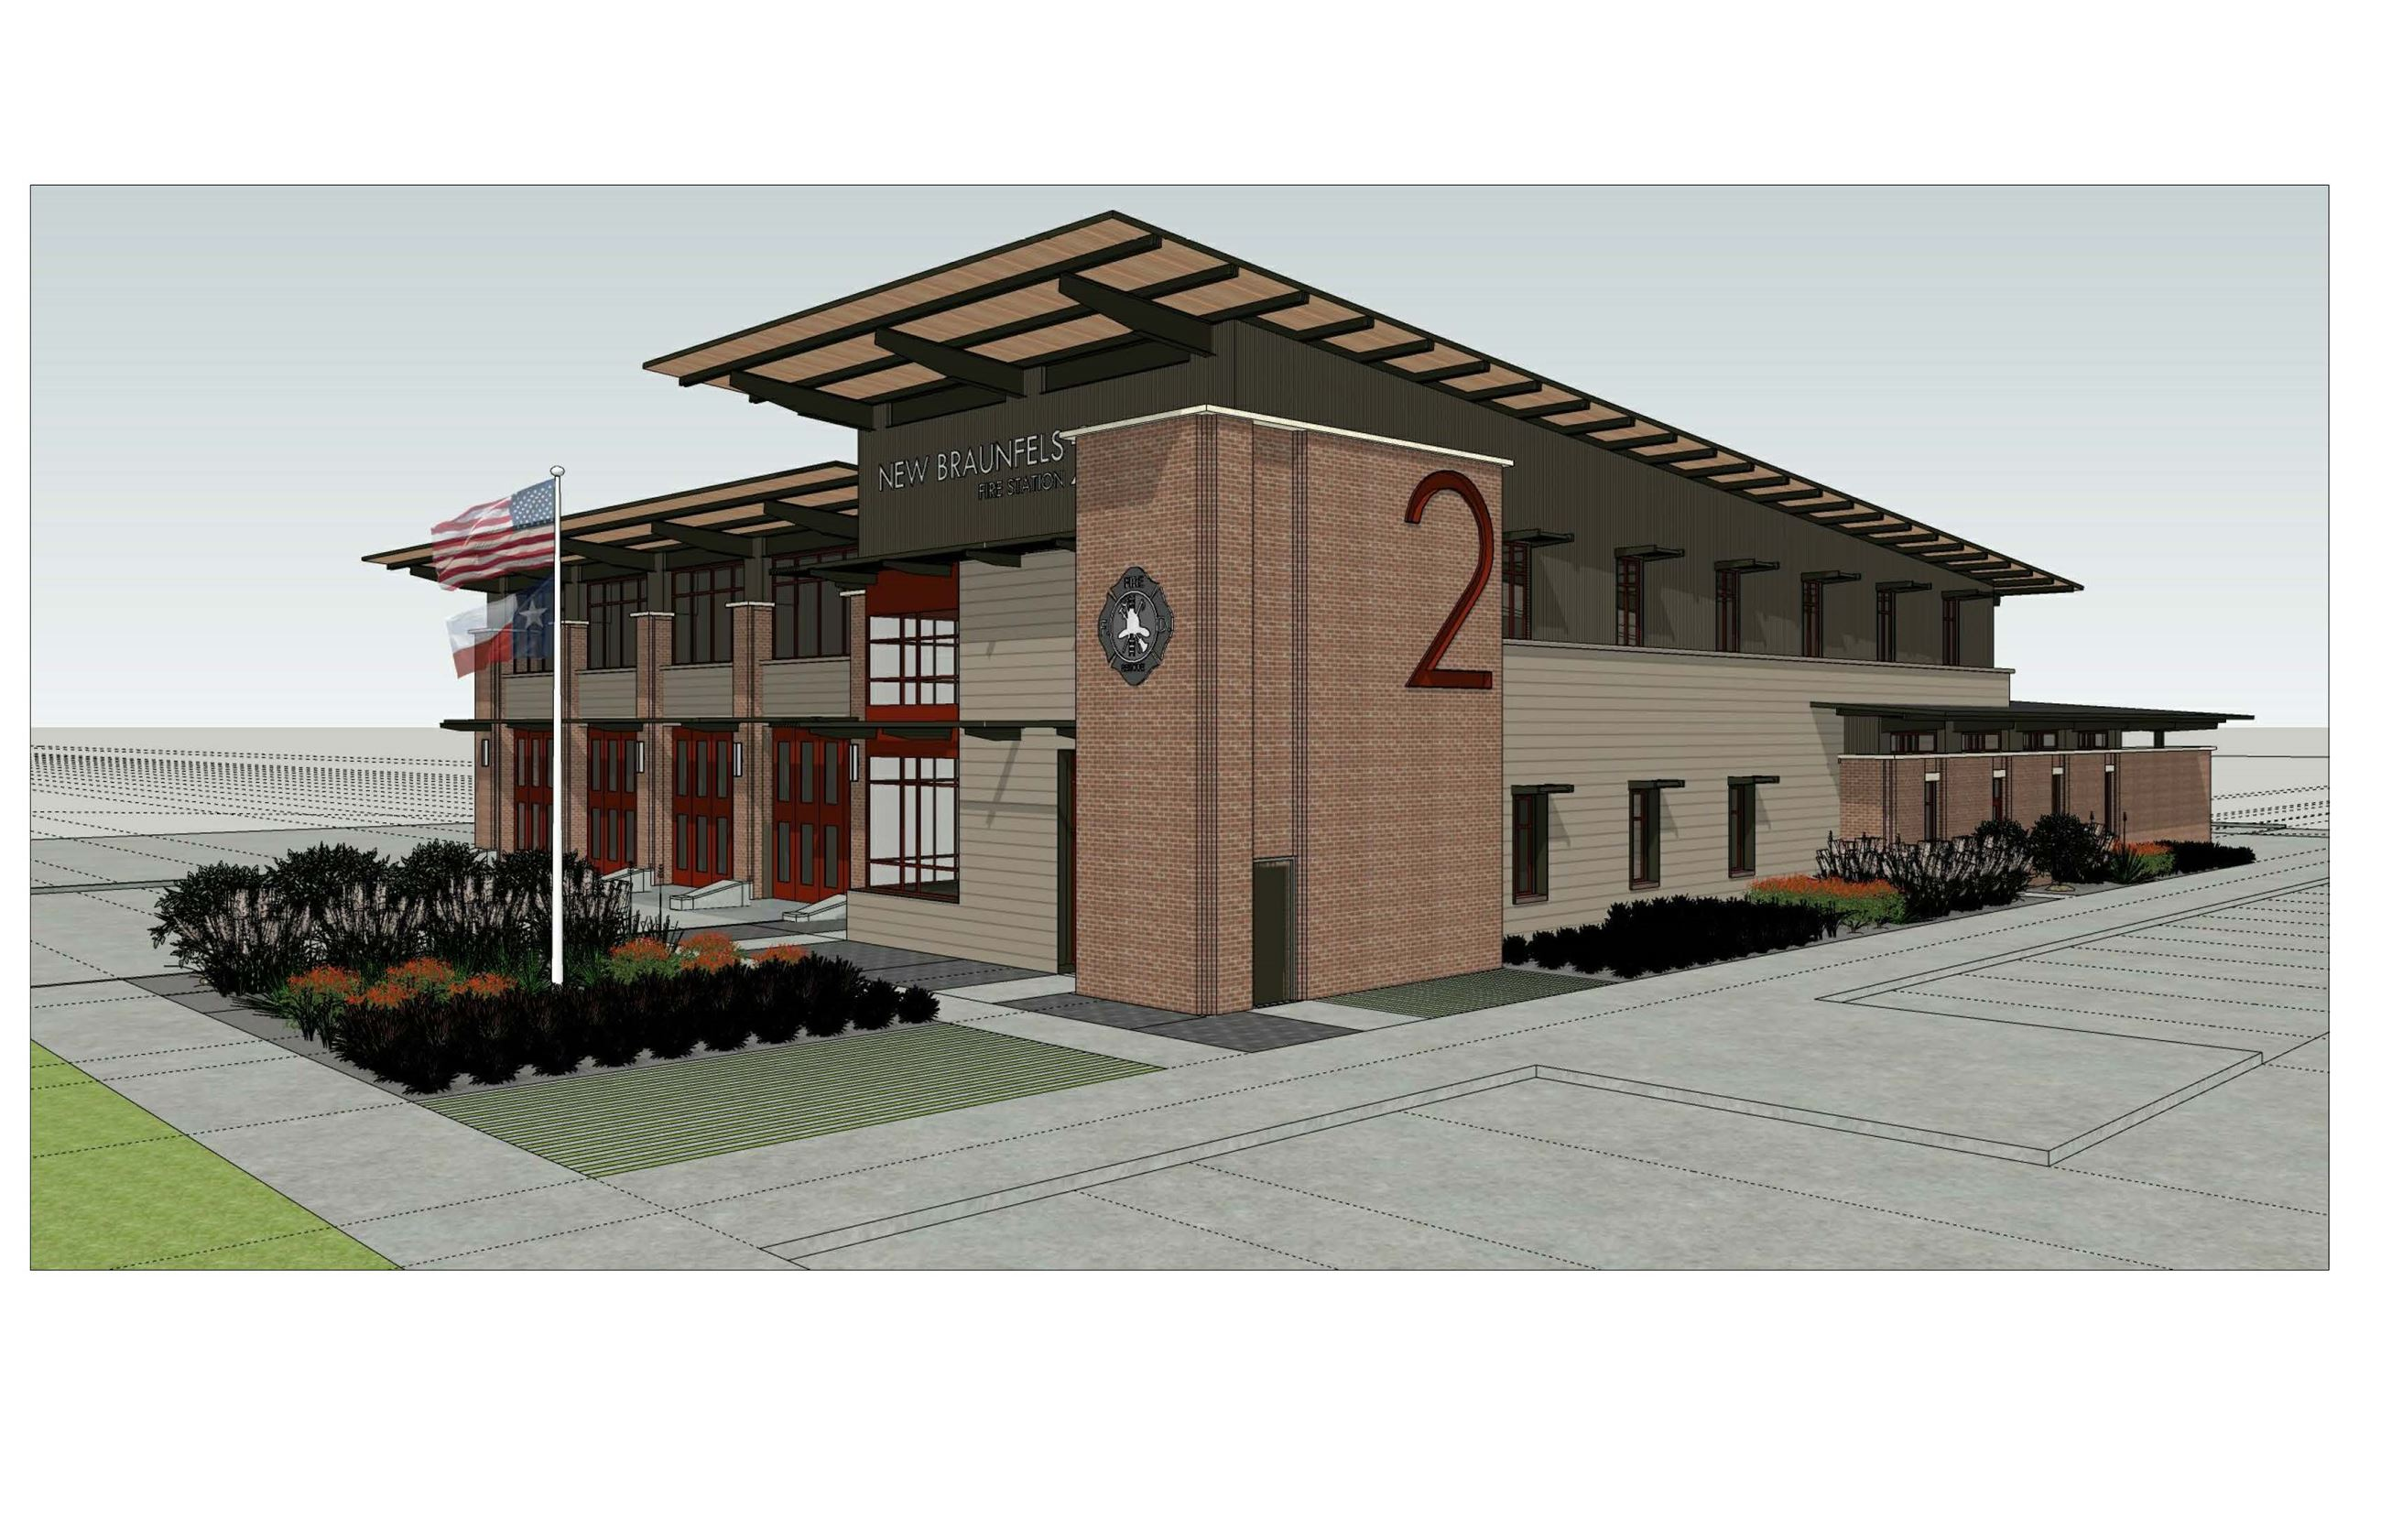 Fire Station No. 2 Rendering